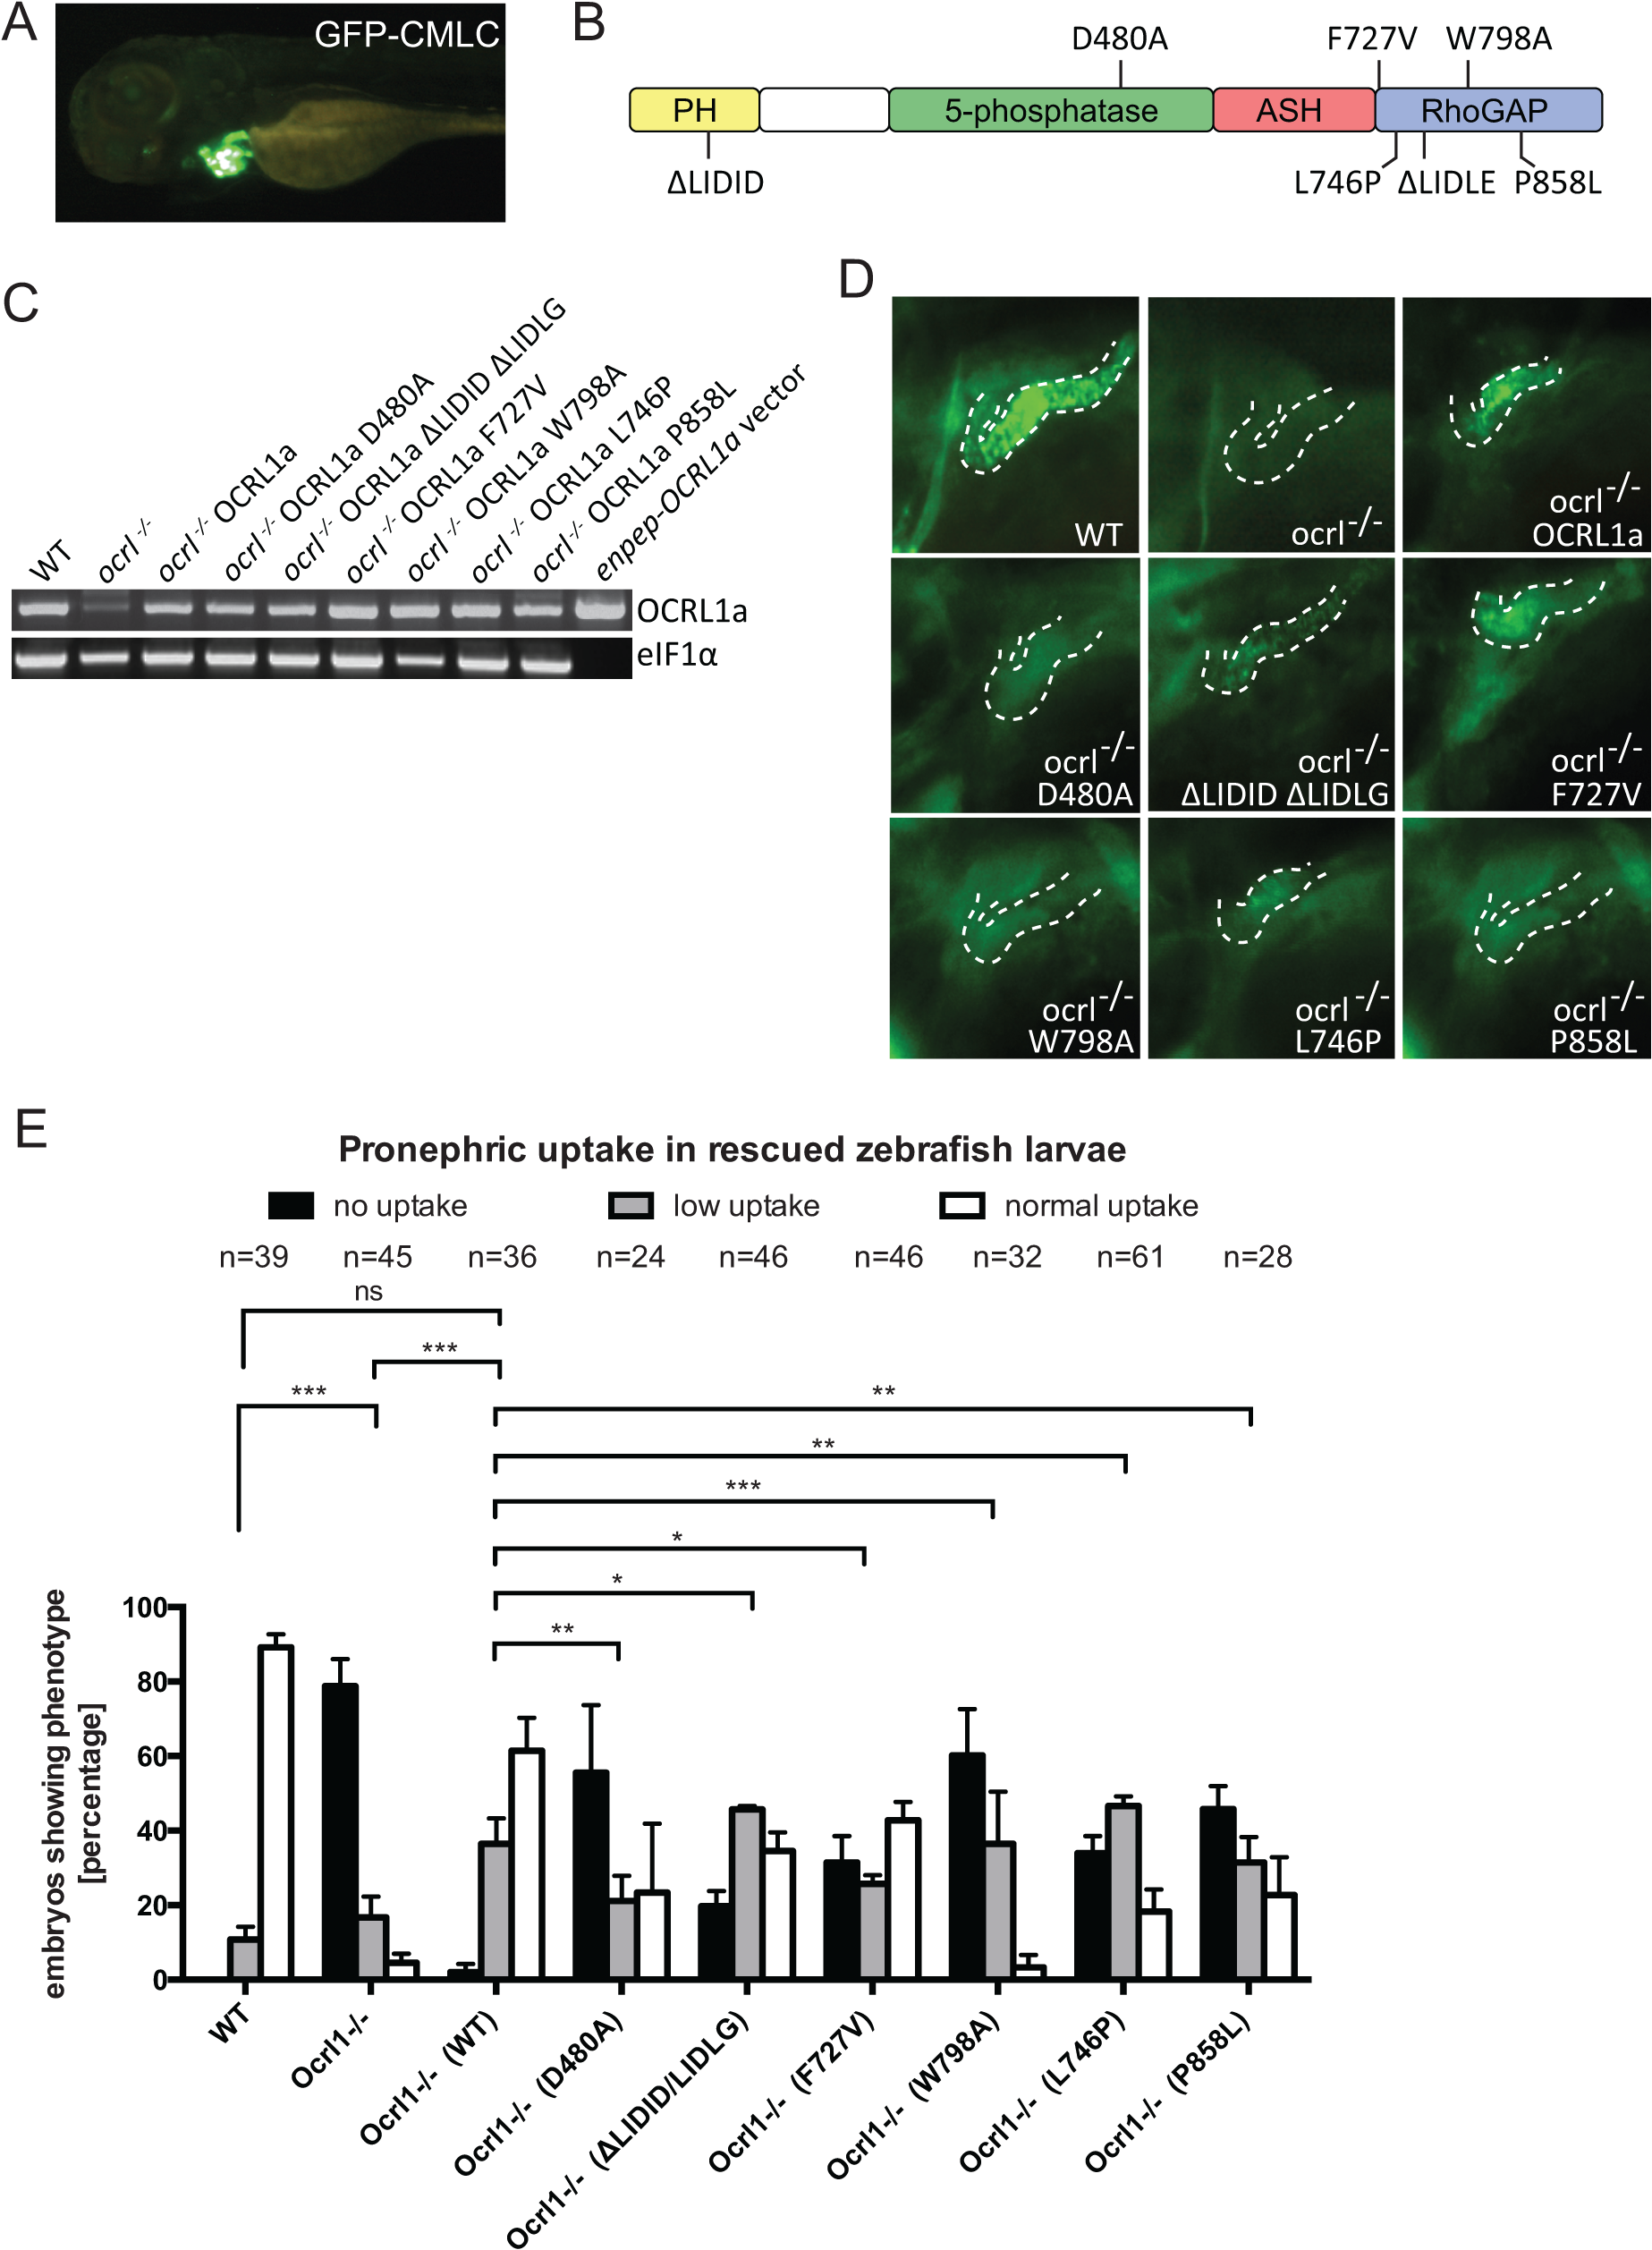 Rescue of the pronephric uptake defect in OCRL1 deficient embryos.